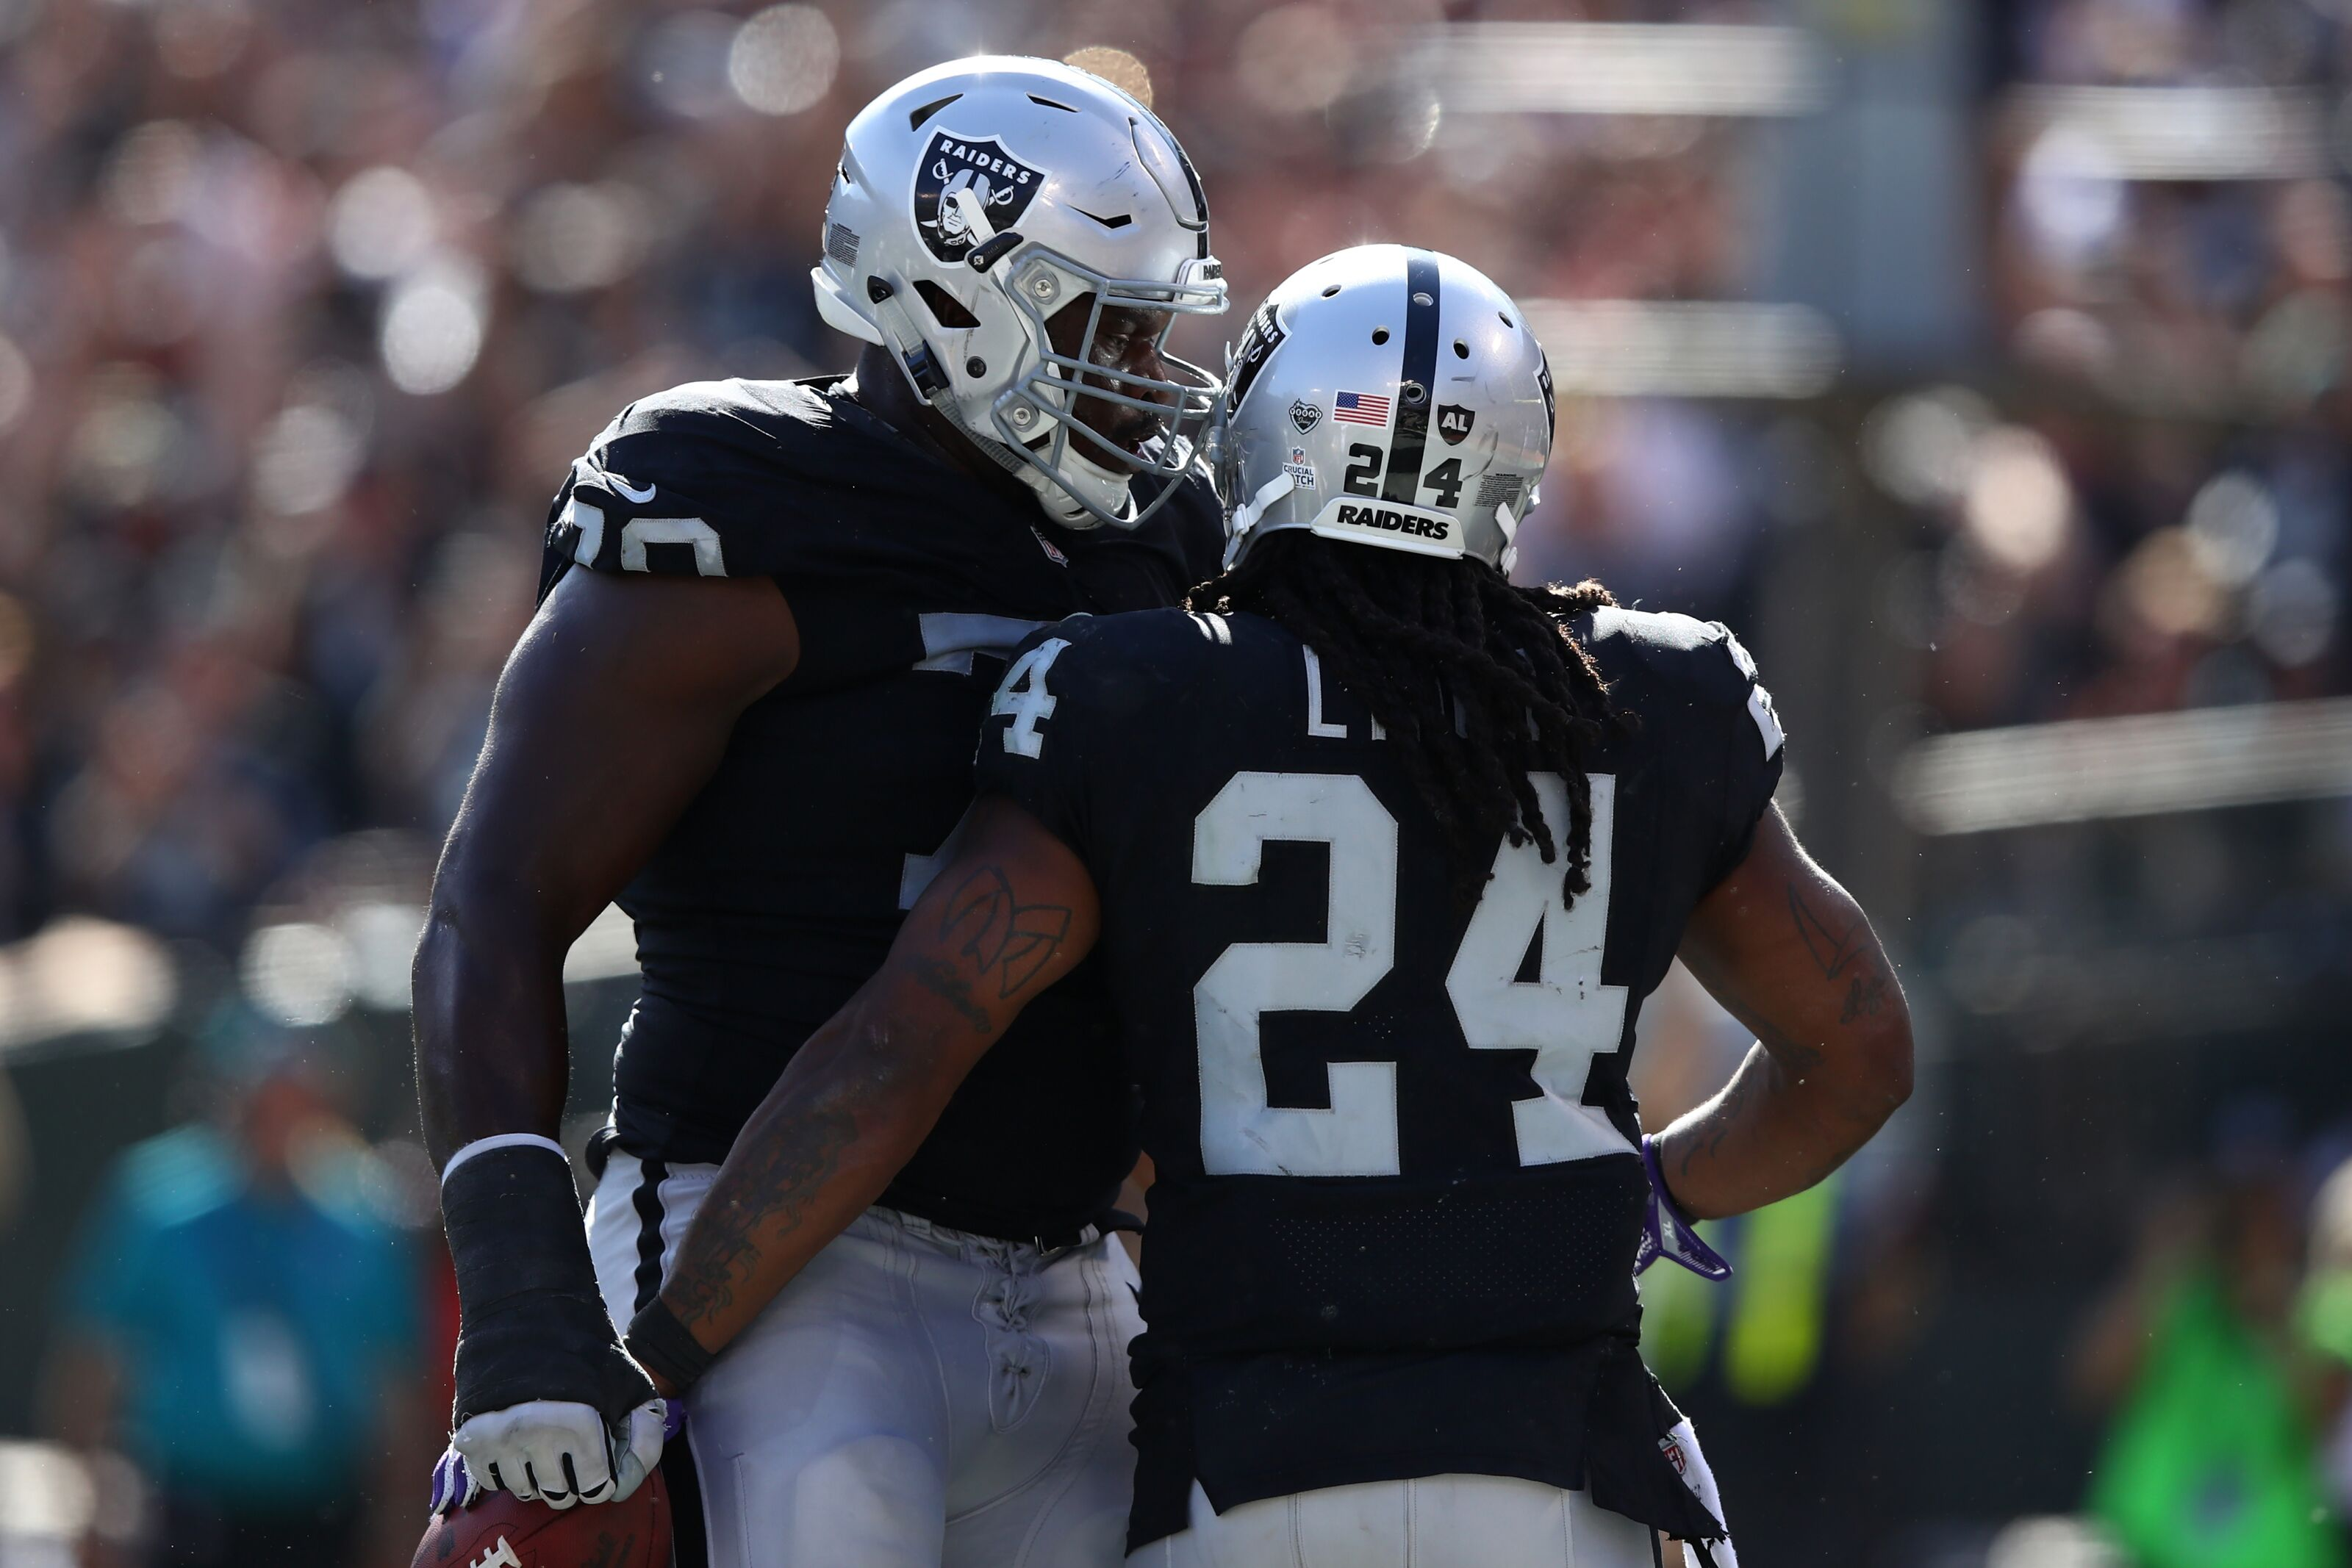 cb03f1a2a Oakland Raiders: Examining strengths, concerns going into 2018 season -  Page 3